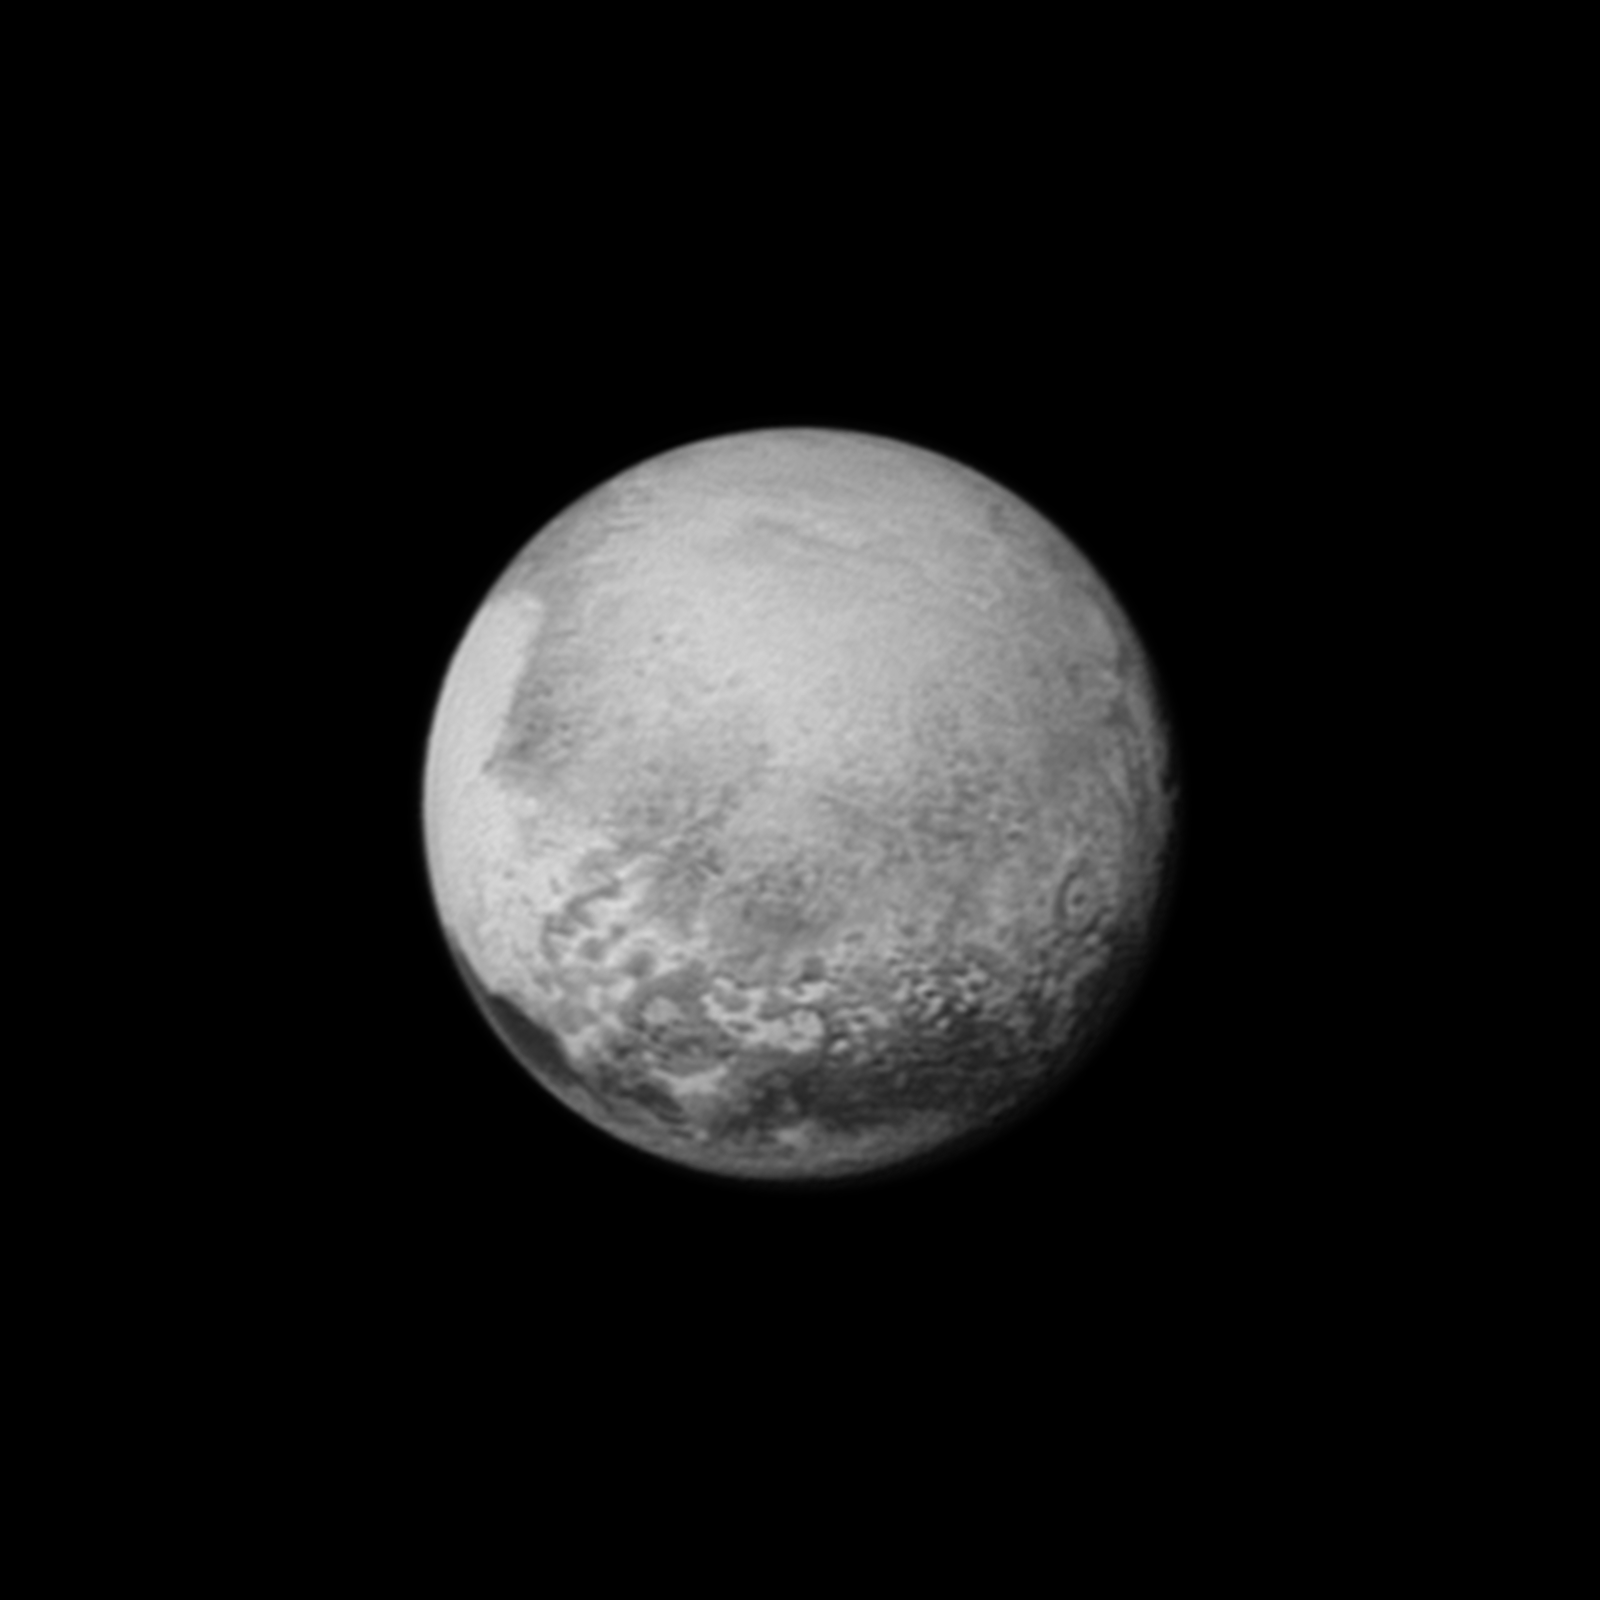 Pluto on July 12 from a distance of 1.6 million miles (2.5 million kilometers)